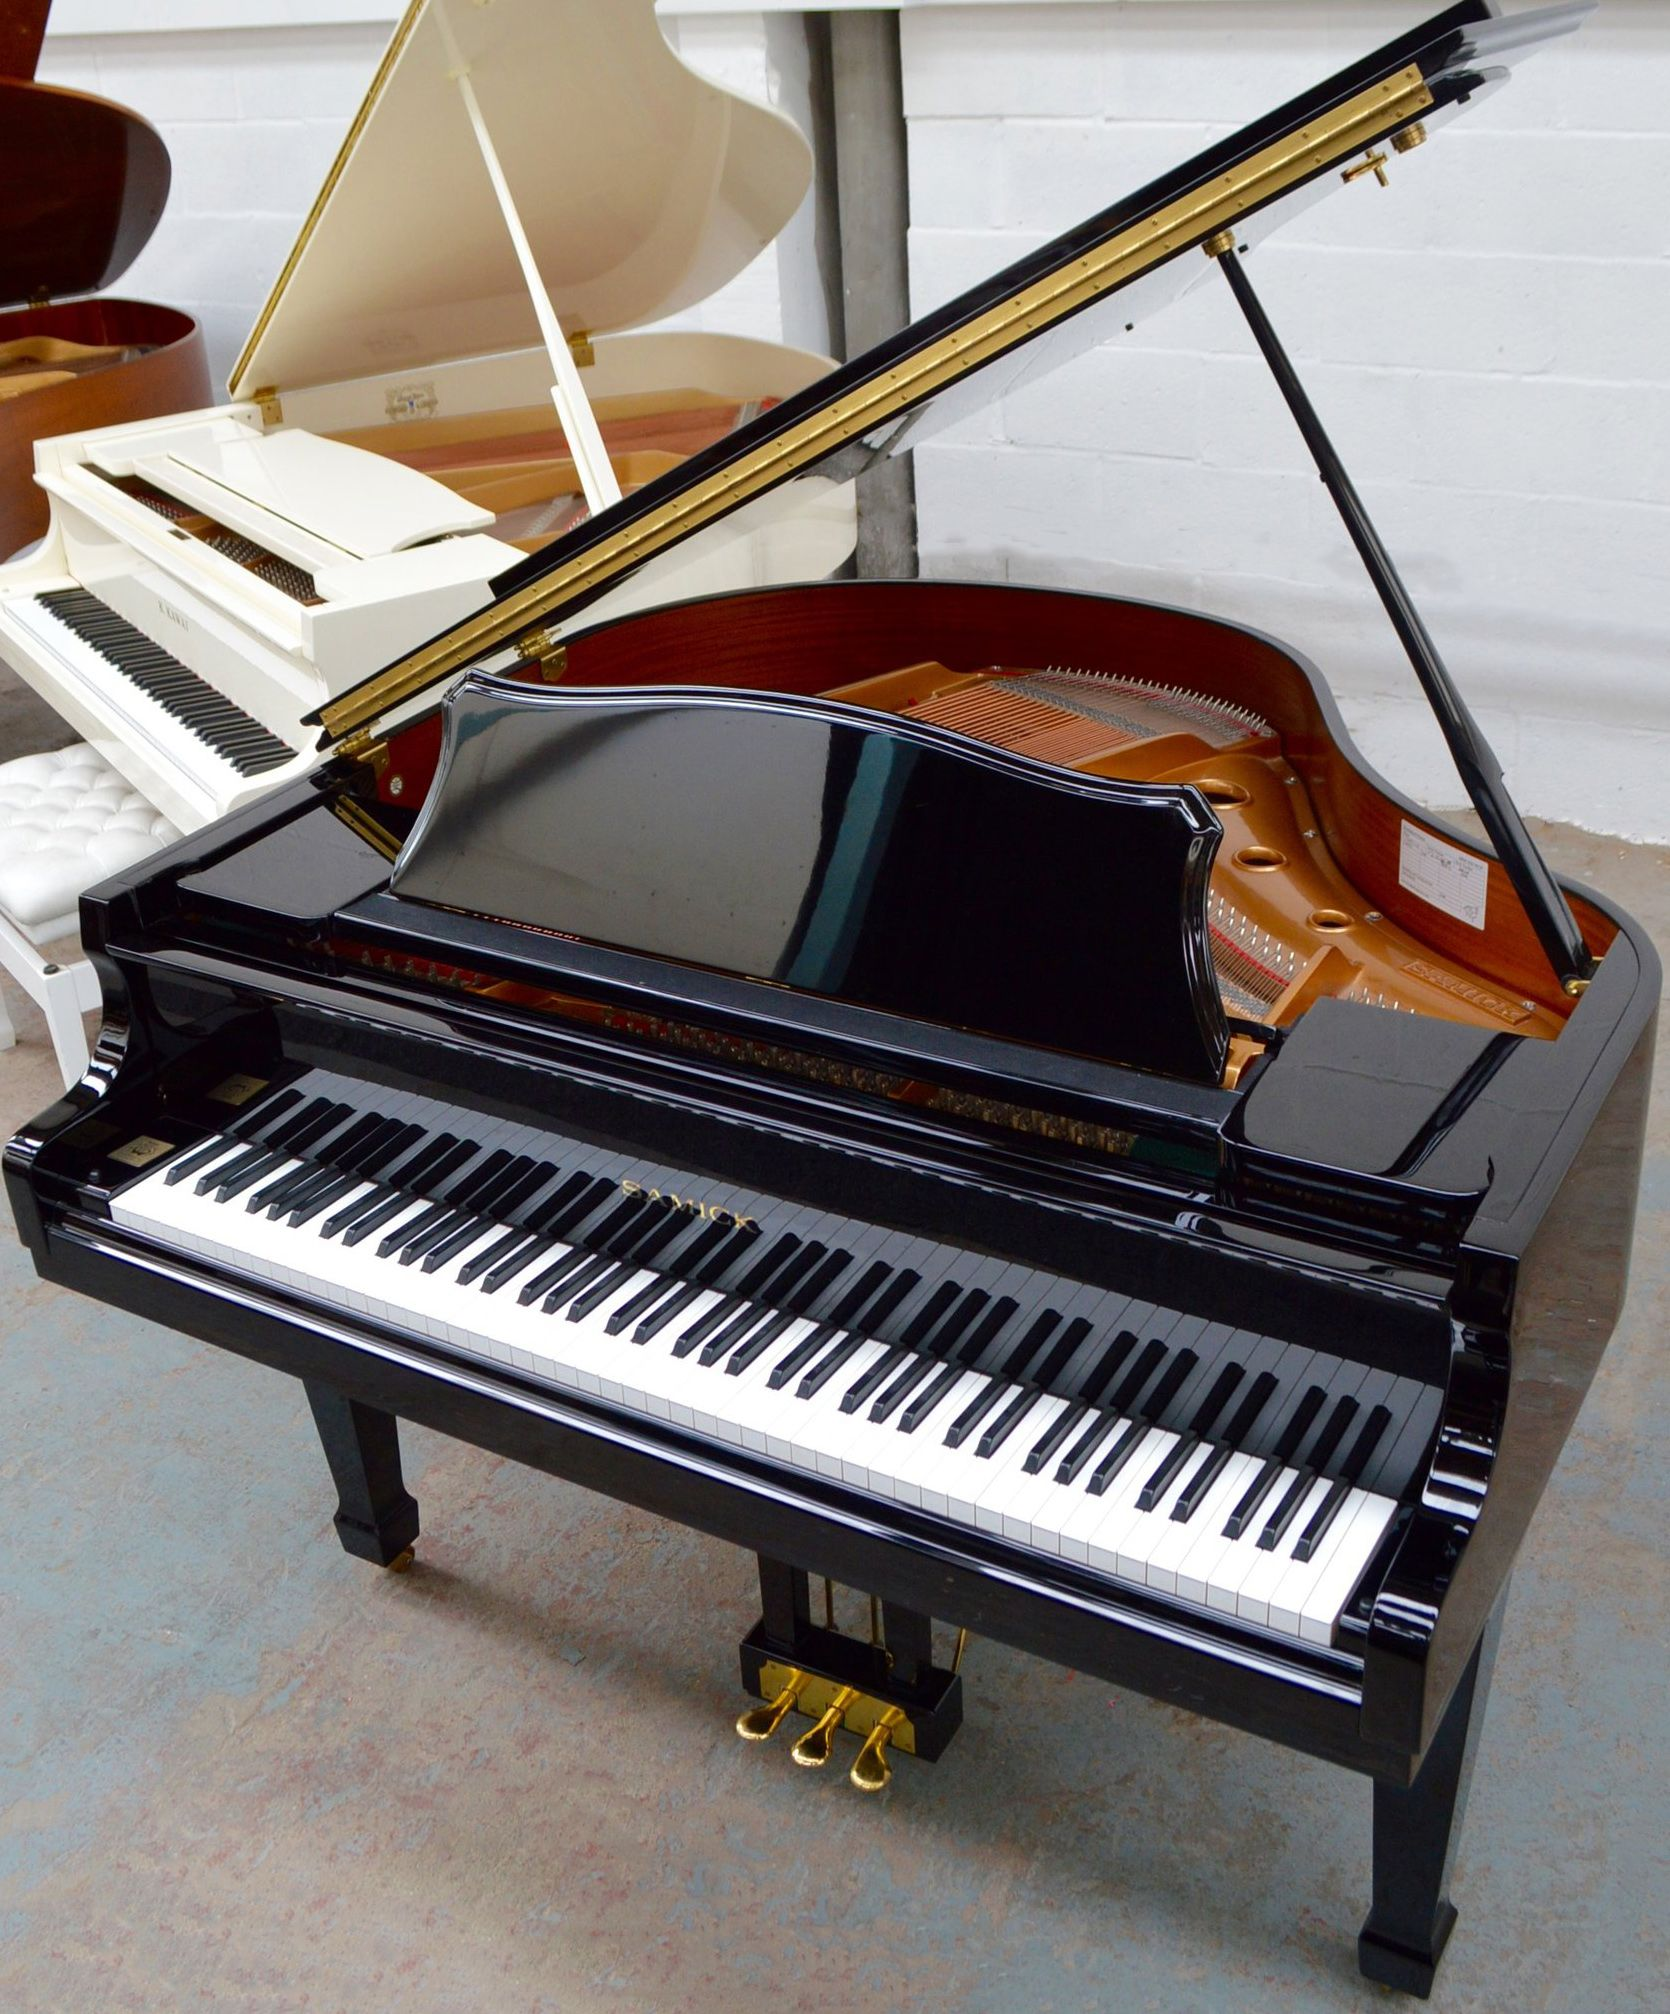 This Baby Grand Piano Has Been Designed In Germany By Klaus Fenner And Then Manufactured By Korean Company Samick Samick A Baby Grand Pianos Piano Grand Piano